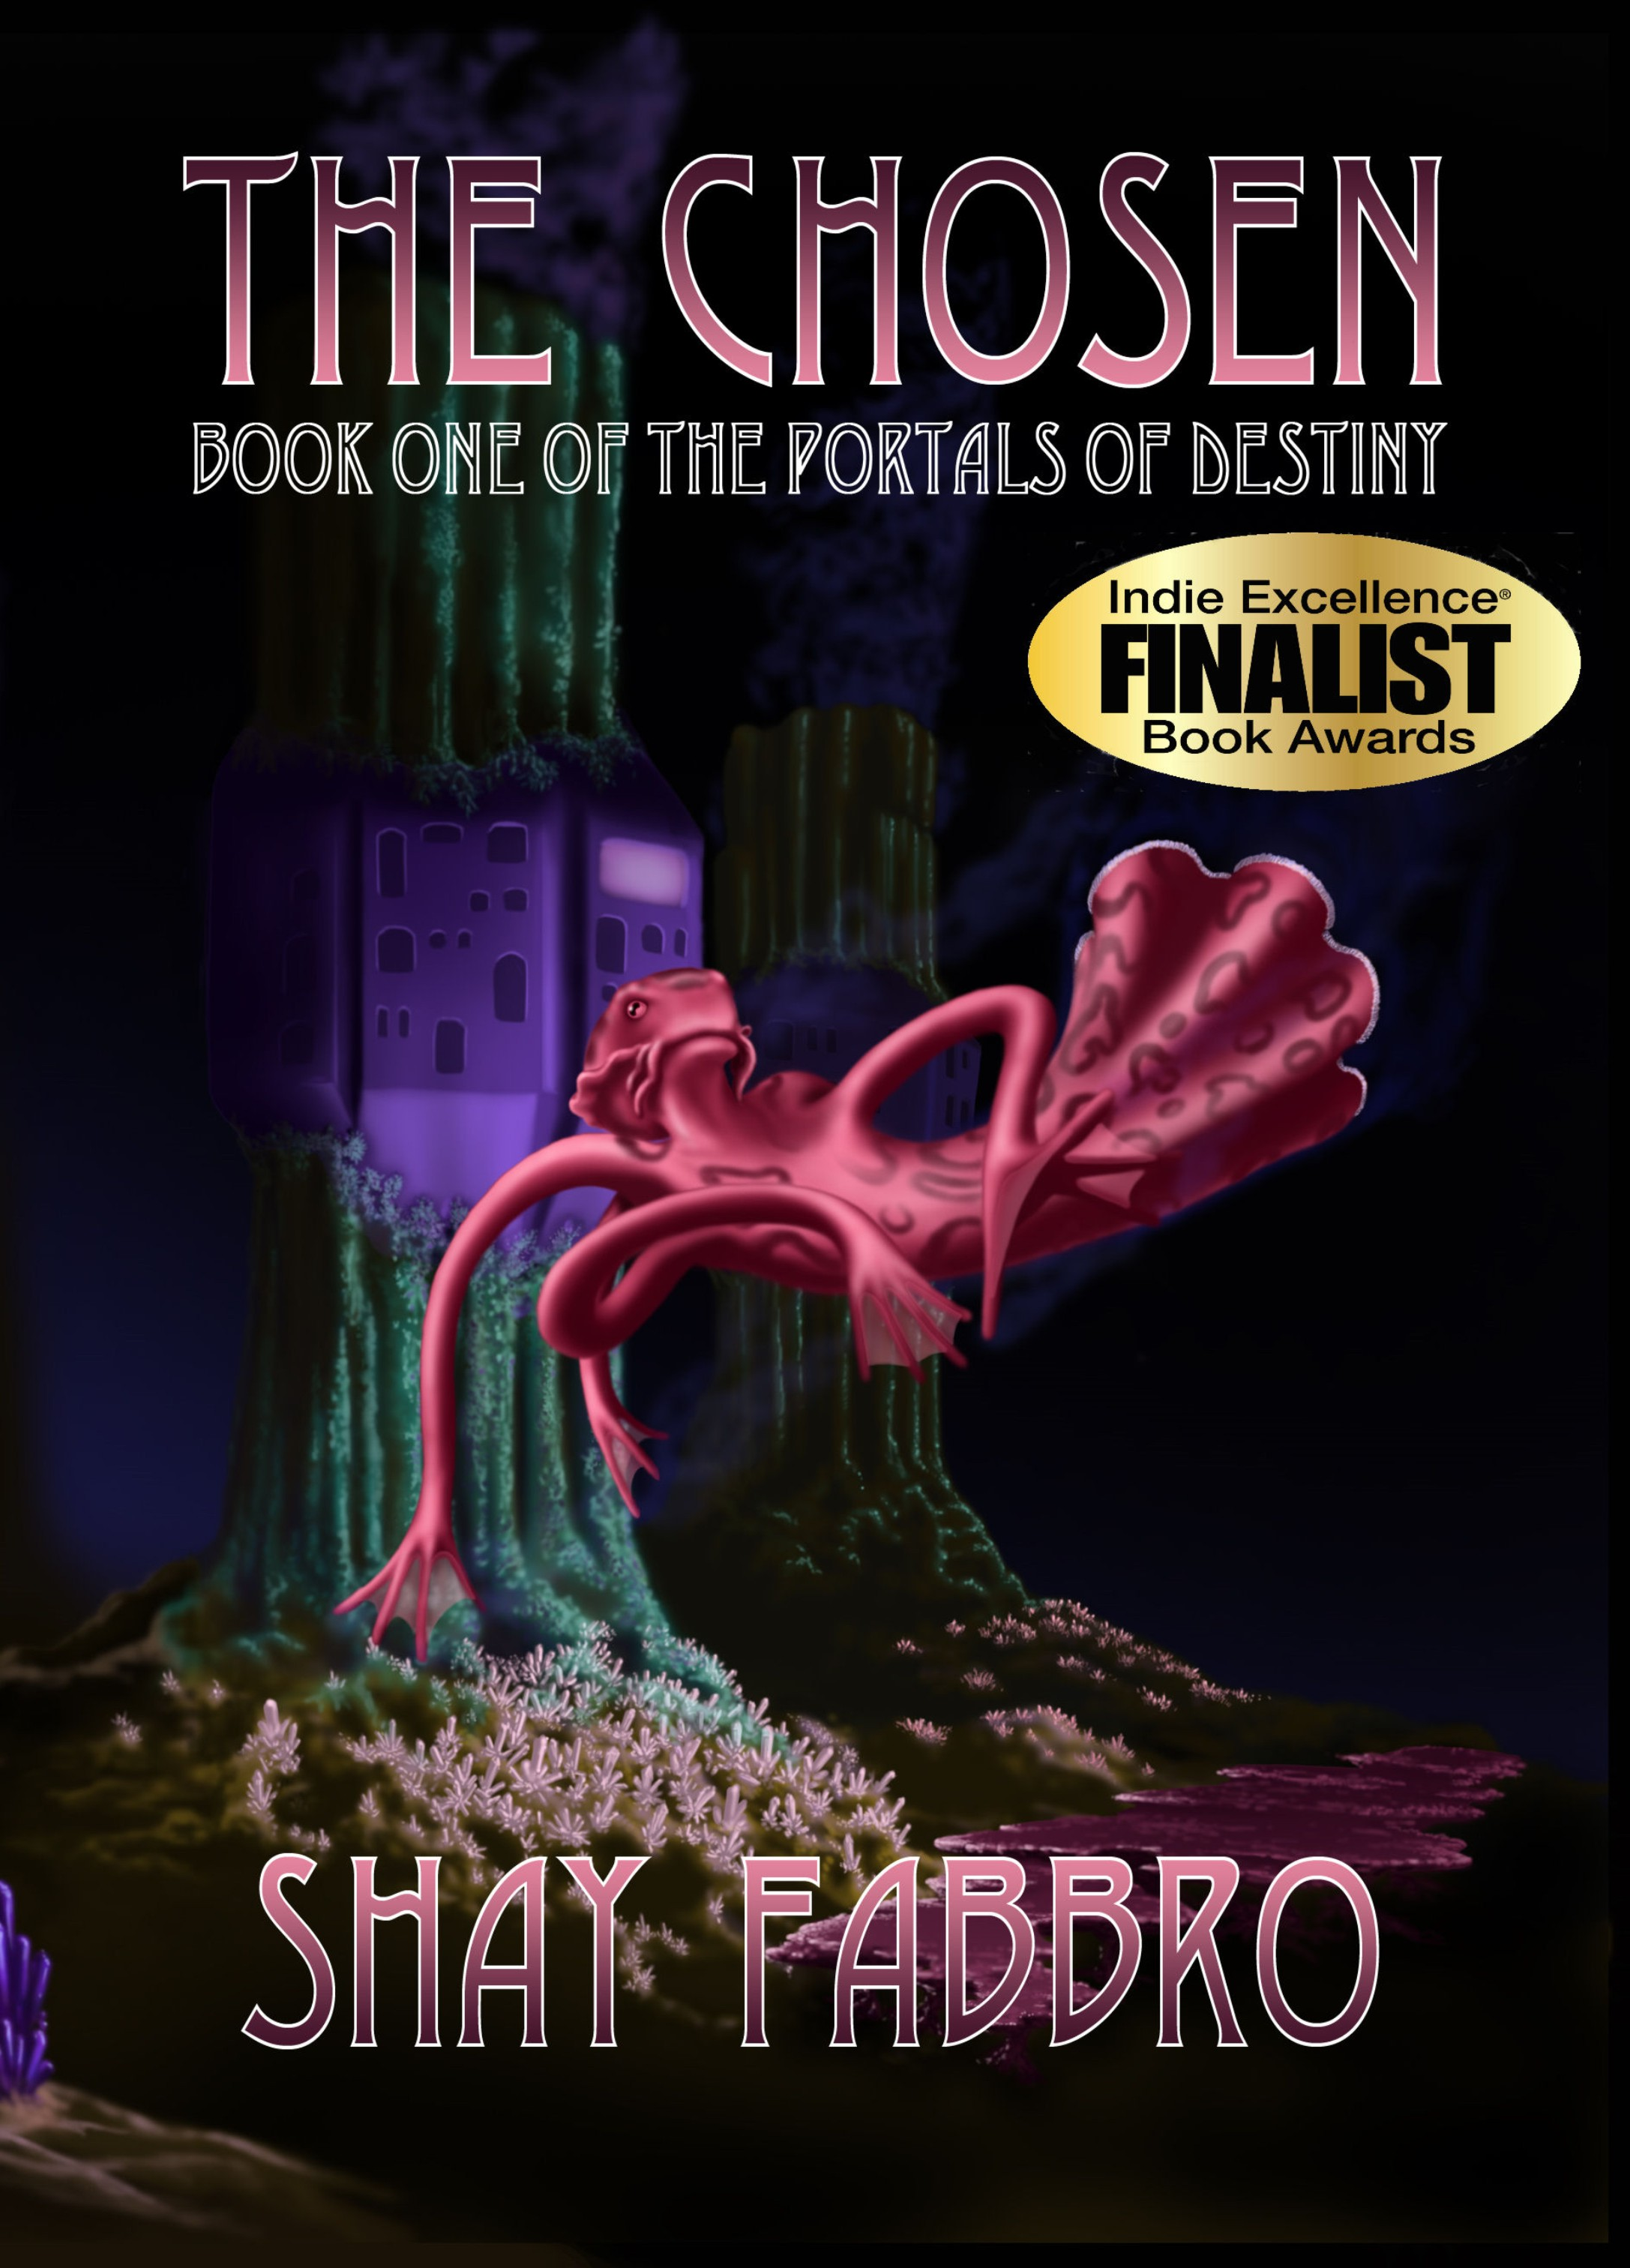 A Guest post by SHAY FABBRO